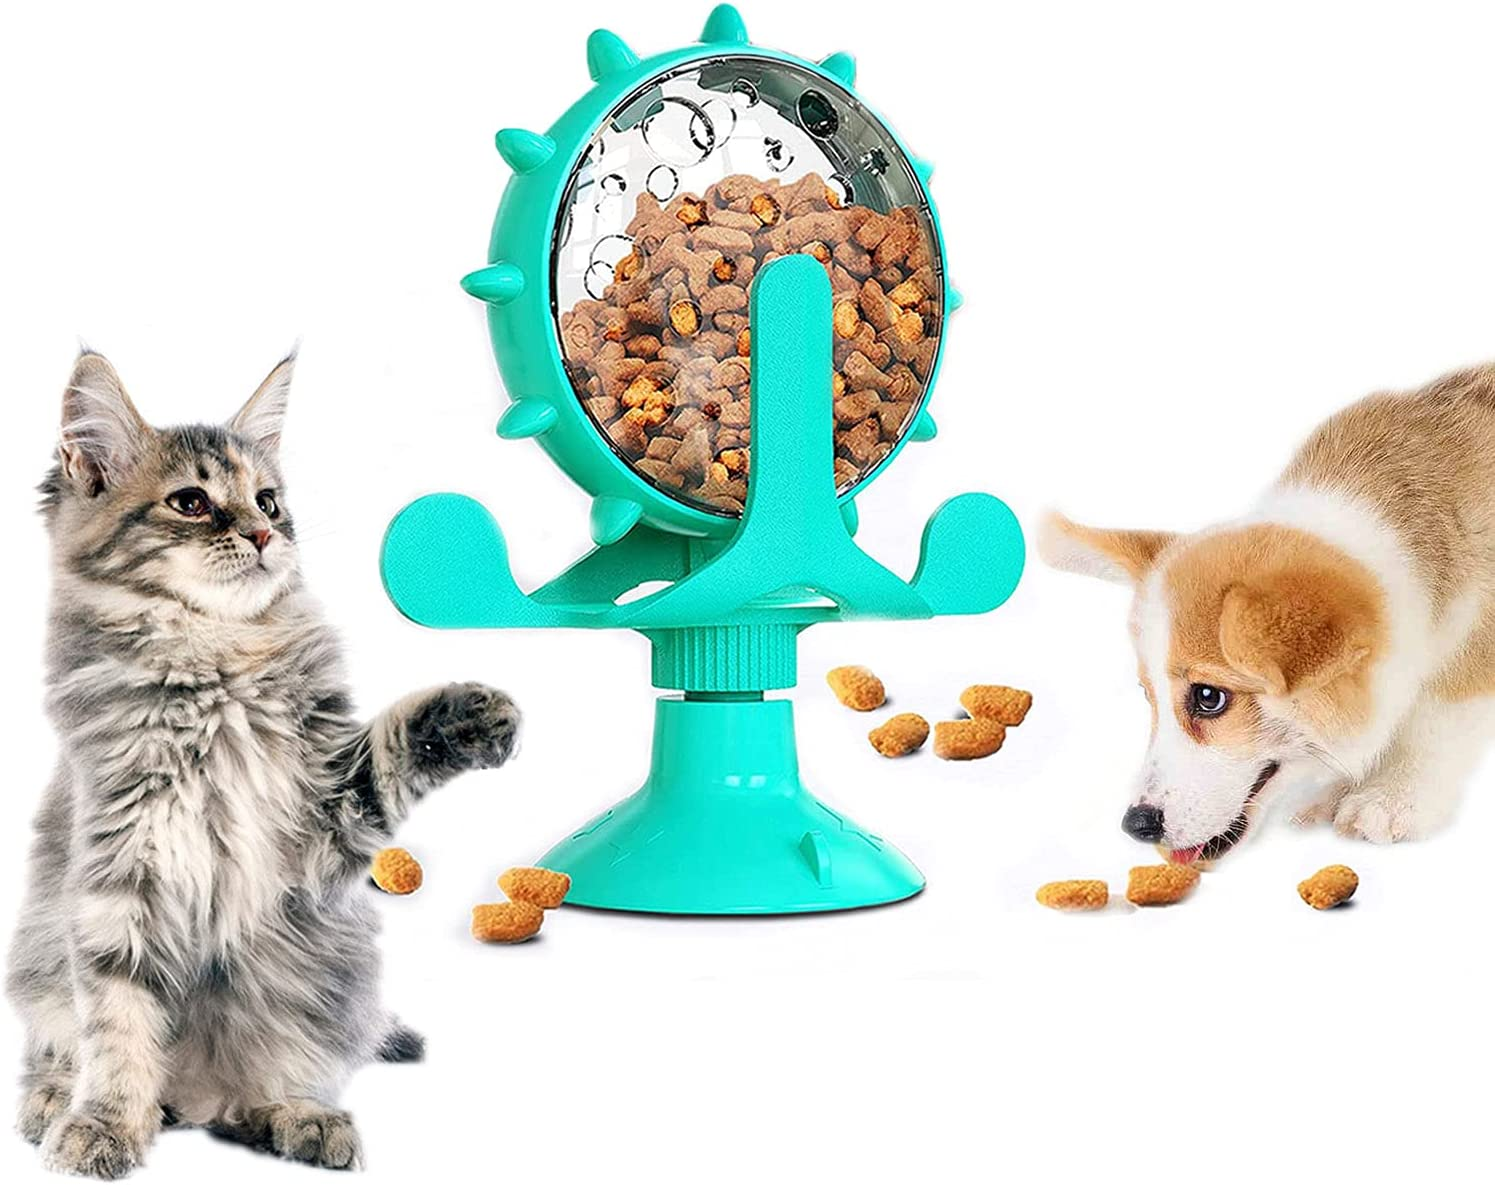 TAOZUA Cat Food Dispenser Toy,360° Rotating Windmill Treat Dispenser Pet Toy with Suction Cup, Interactive Slow Feeder Toy for Cats/Dogs